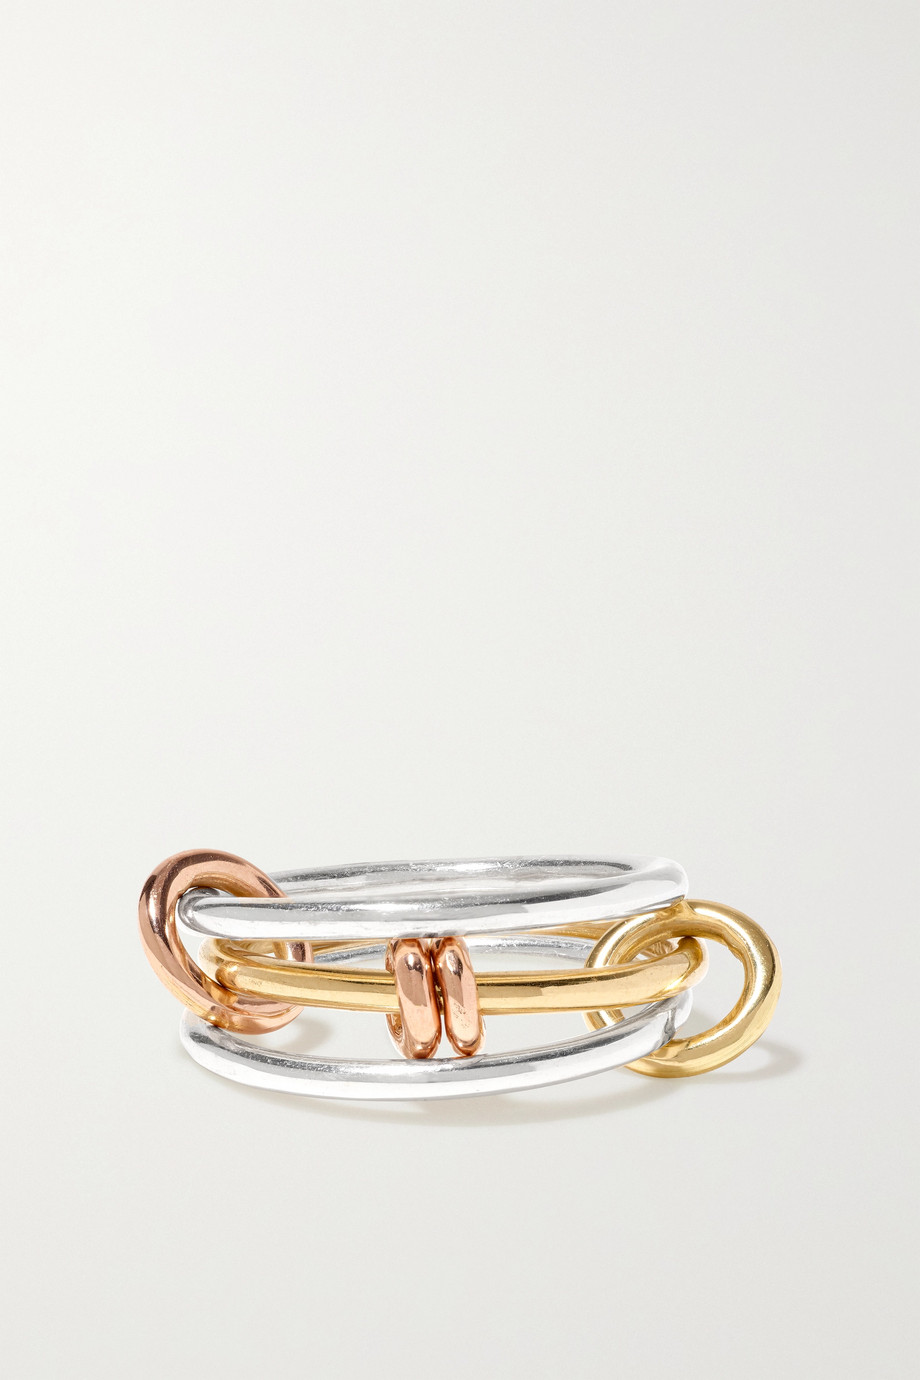 Spinelli Kilcollin Acacia MX sterling silver and 18-karat yellow and rose gold ring